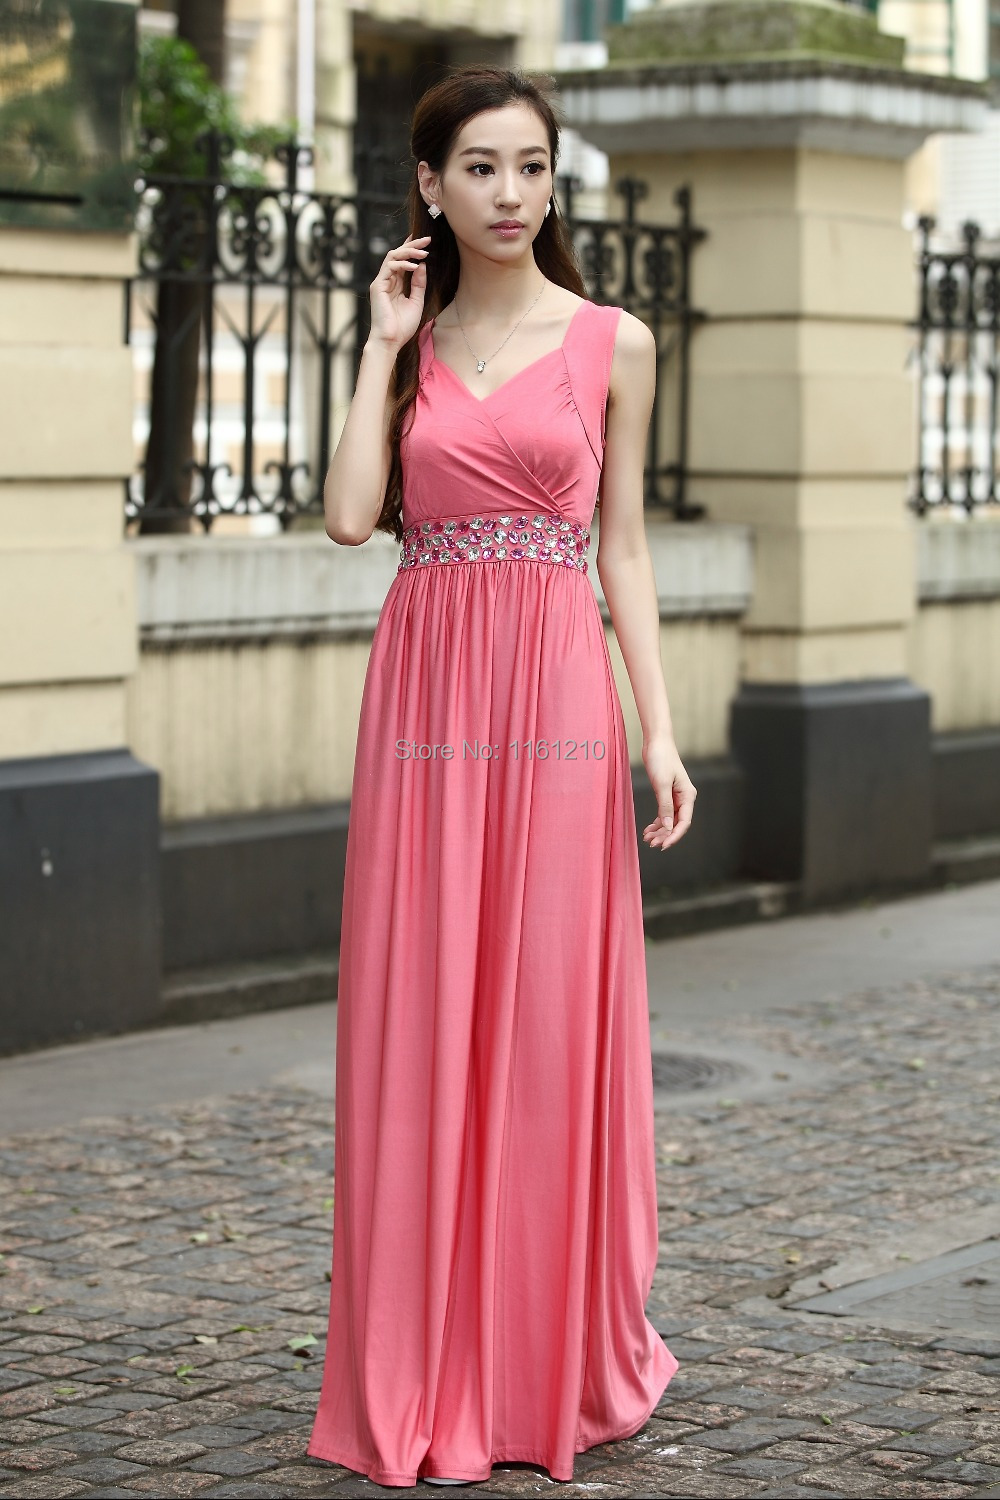 Coral Pink Formal Party Ball Gowns Holiday Dresses Large size dress ...